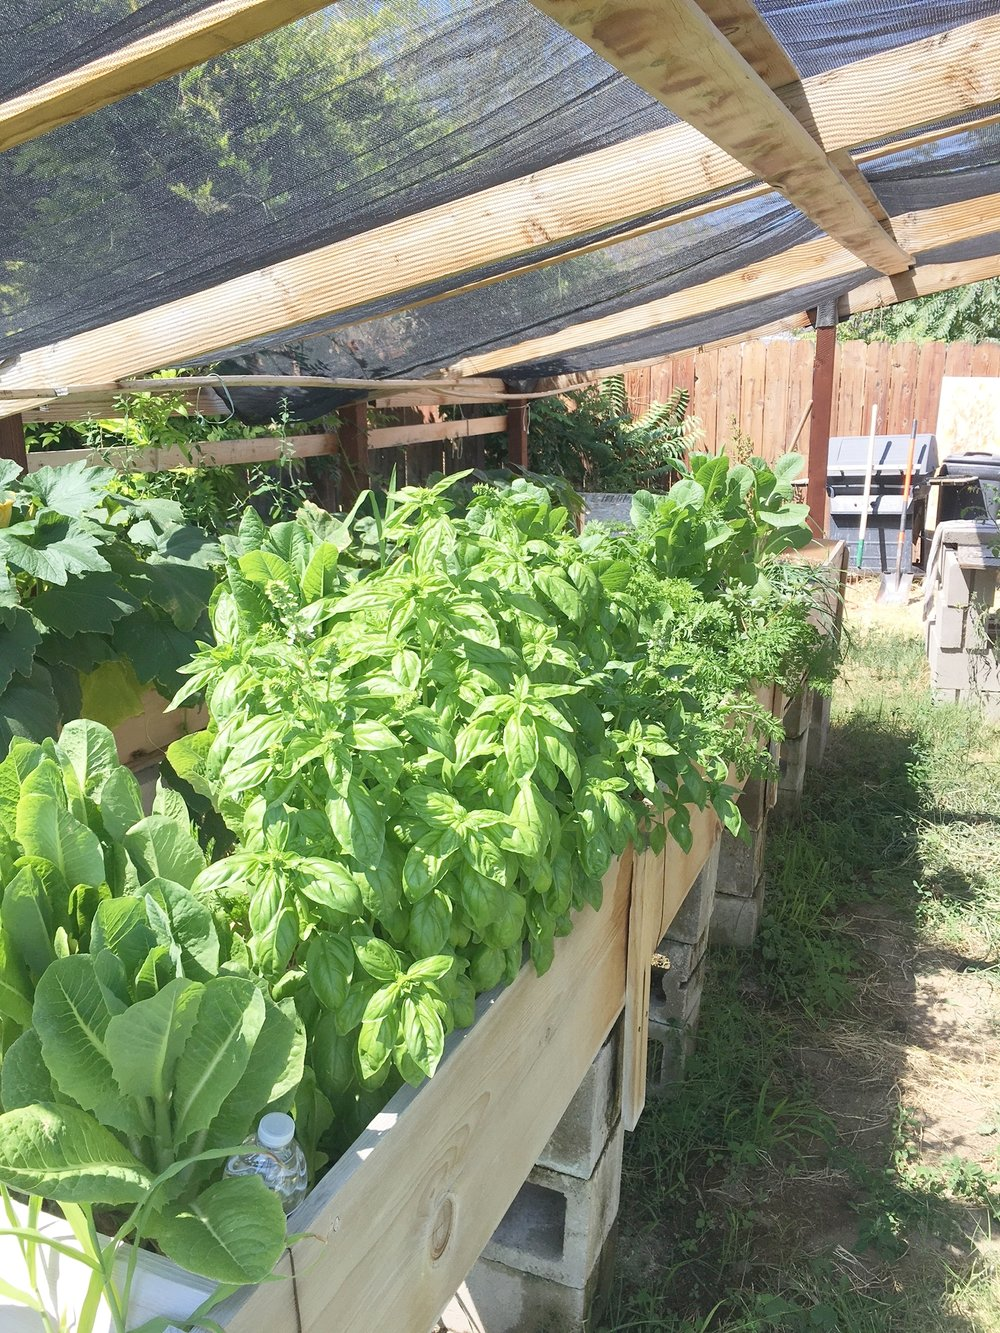 Basil, lettuce, leeks and carrots in my garden. Thankfully I'm past the point where my winter meals depend on harvesting and preserving everything the garden has to offer during the summer. It feels good to work the earth and watch as the seeds sprout and develop. Nothing compares with tomatoes, cucumbers and melons fresh from the garden directly to the table. No grocery store produce counter can offer the same quality and flavor.